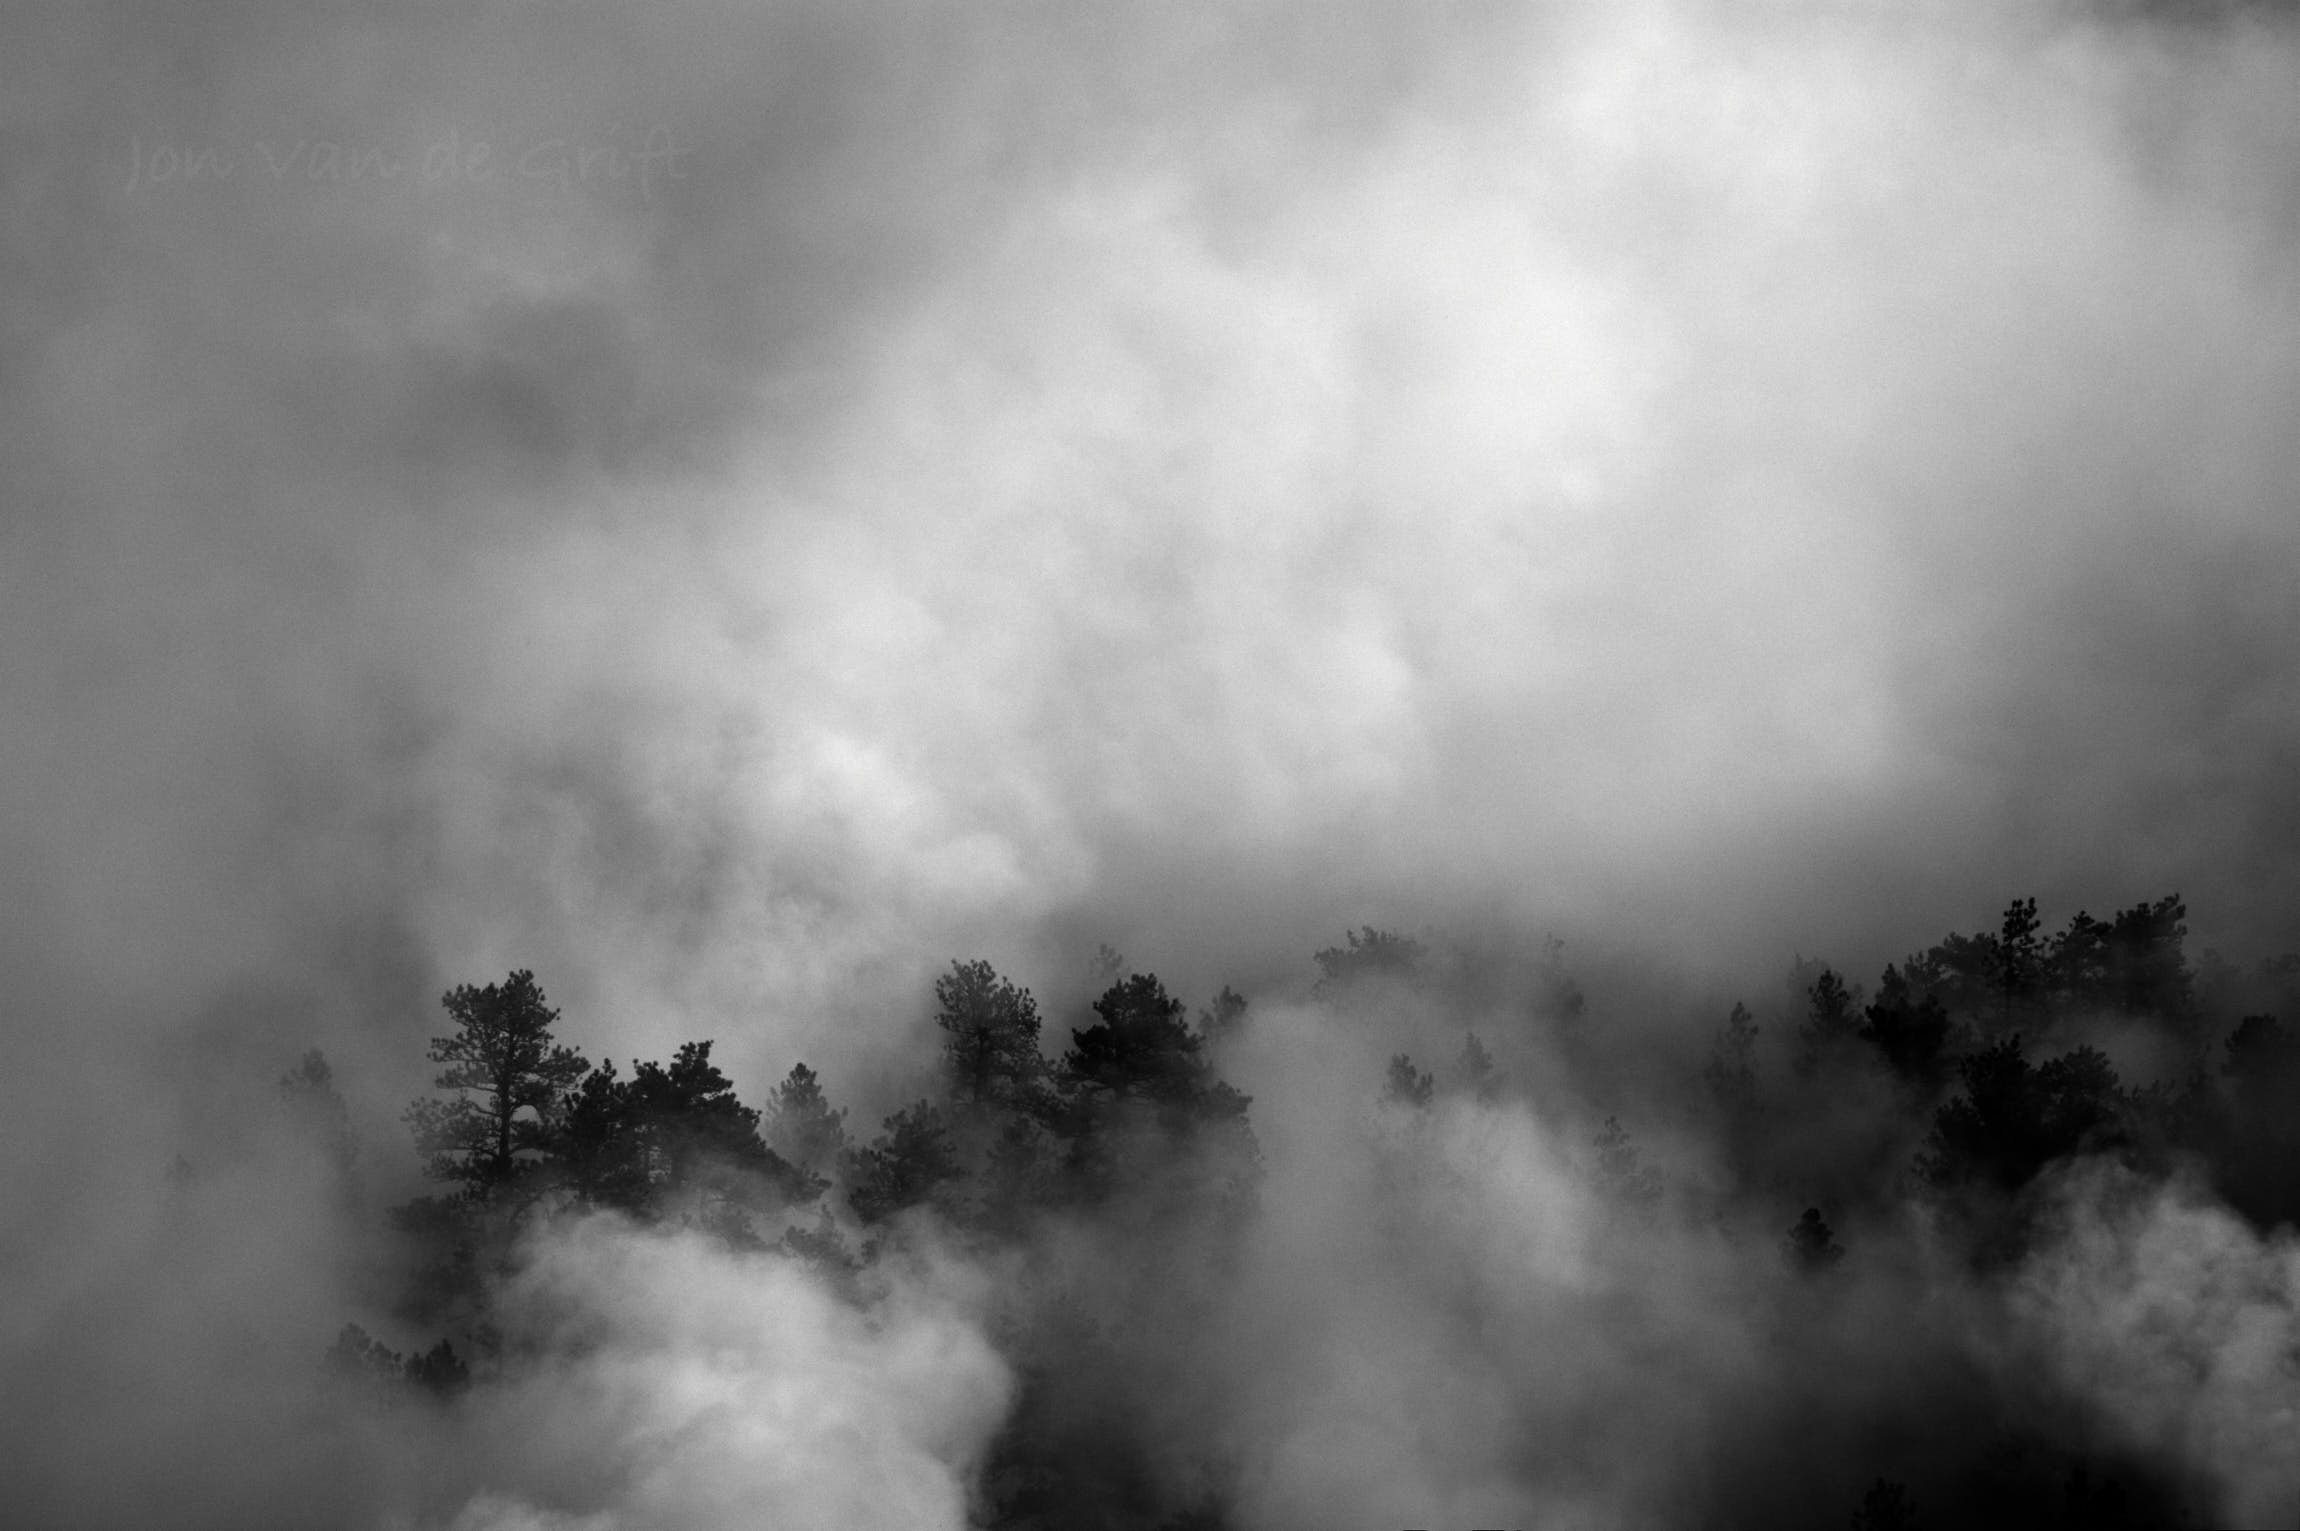 Black and white aerial photograph of a fire with smoke in a forest